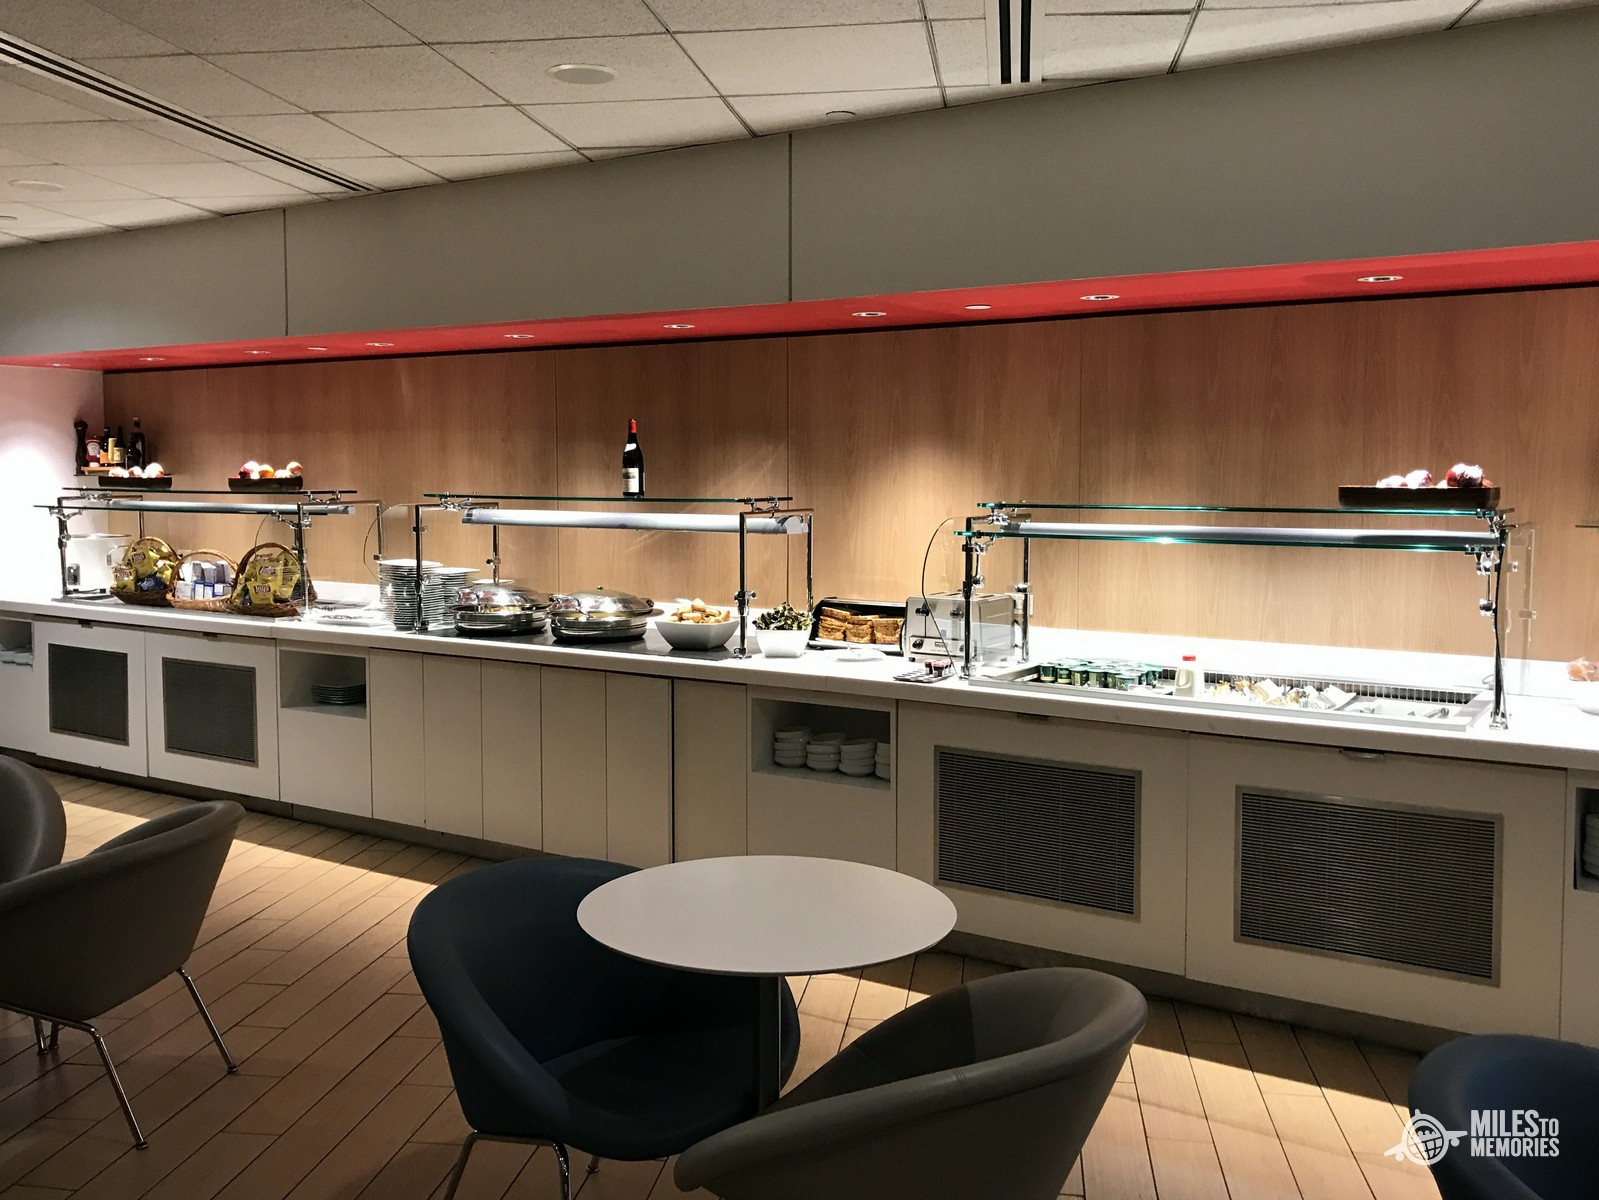 JFK Air France Priority Pass Lounge Access Domestic Flights & Review